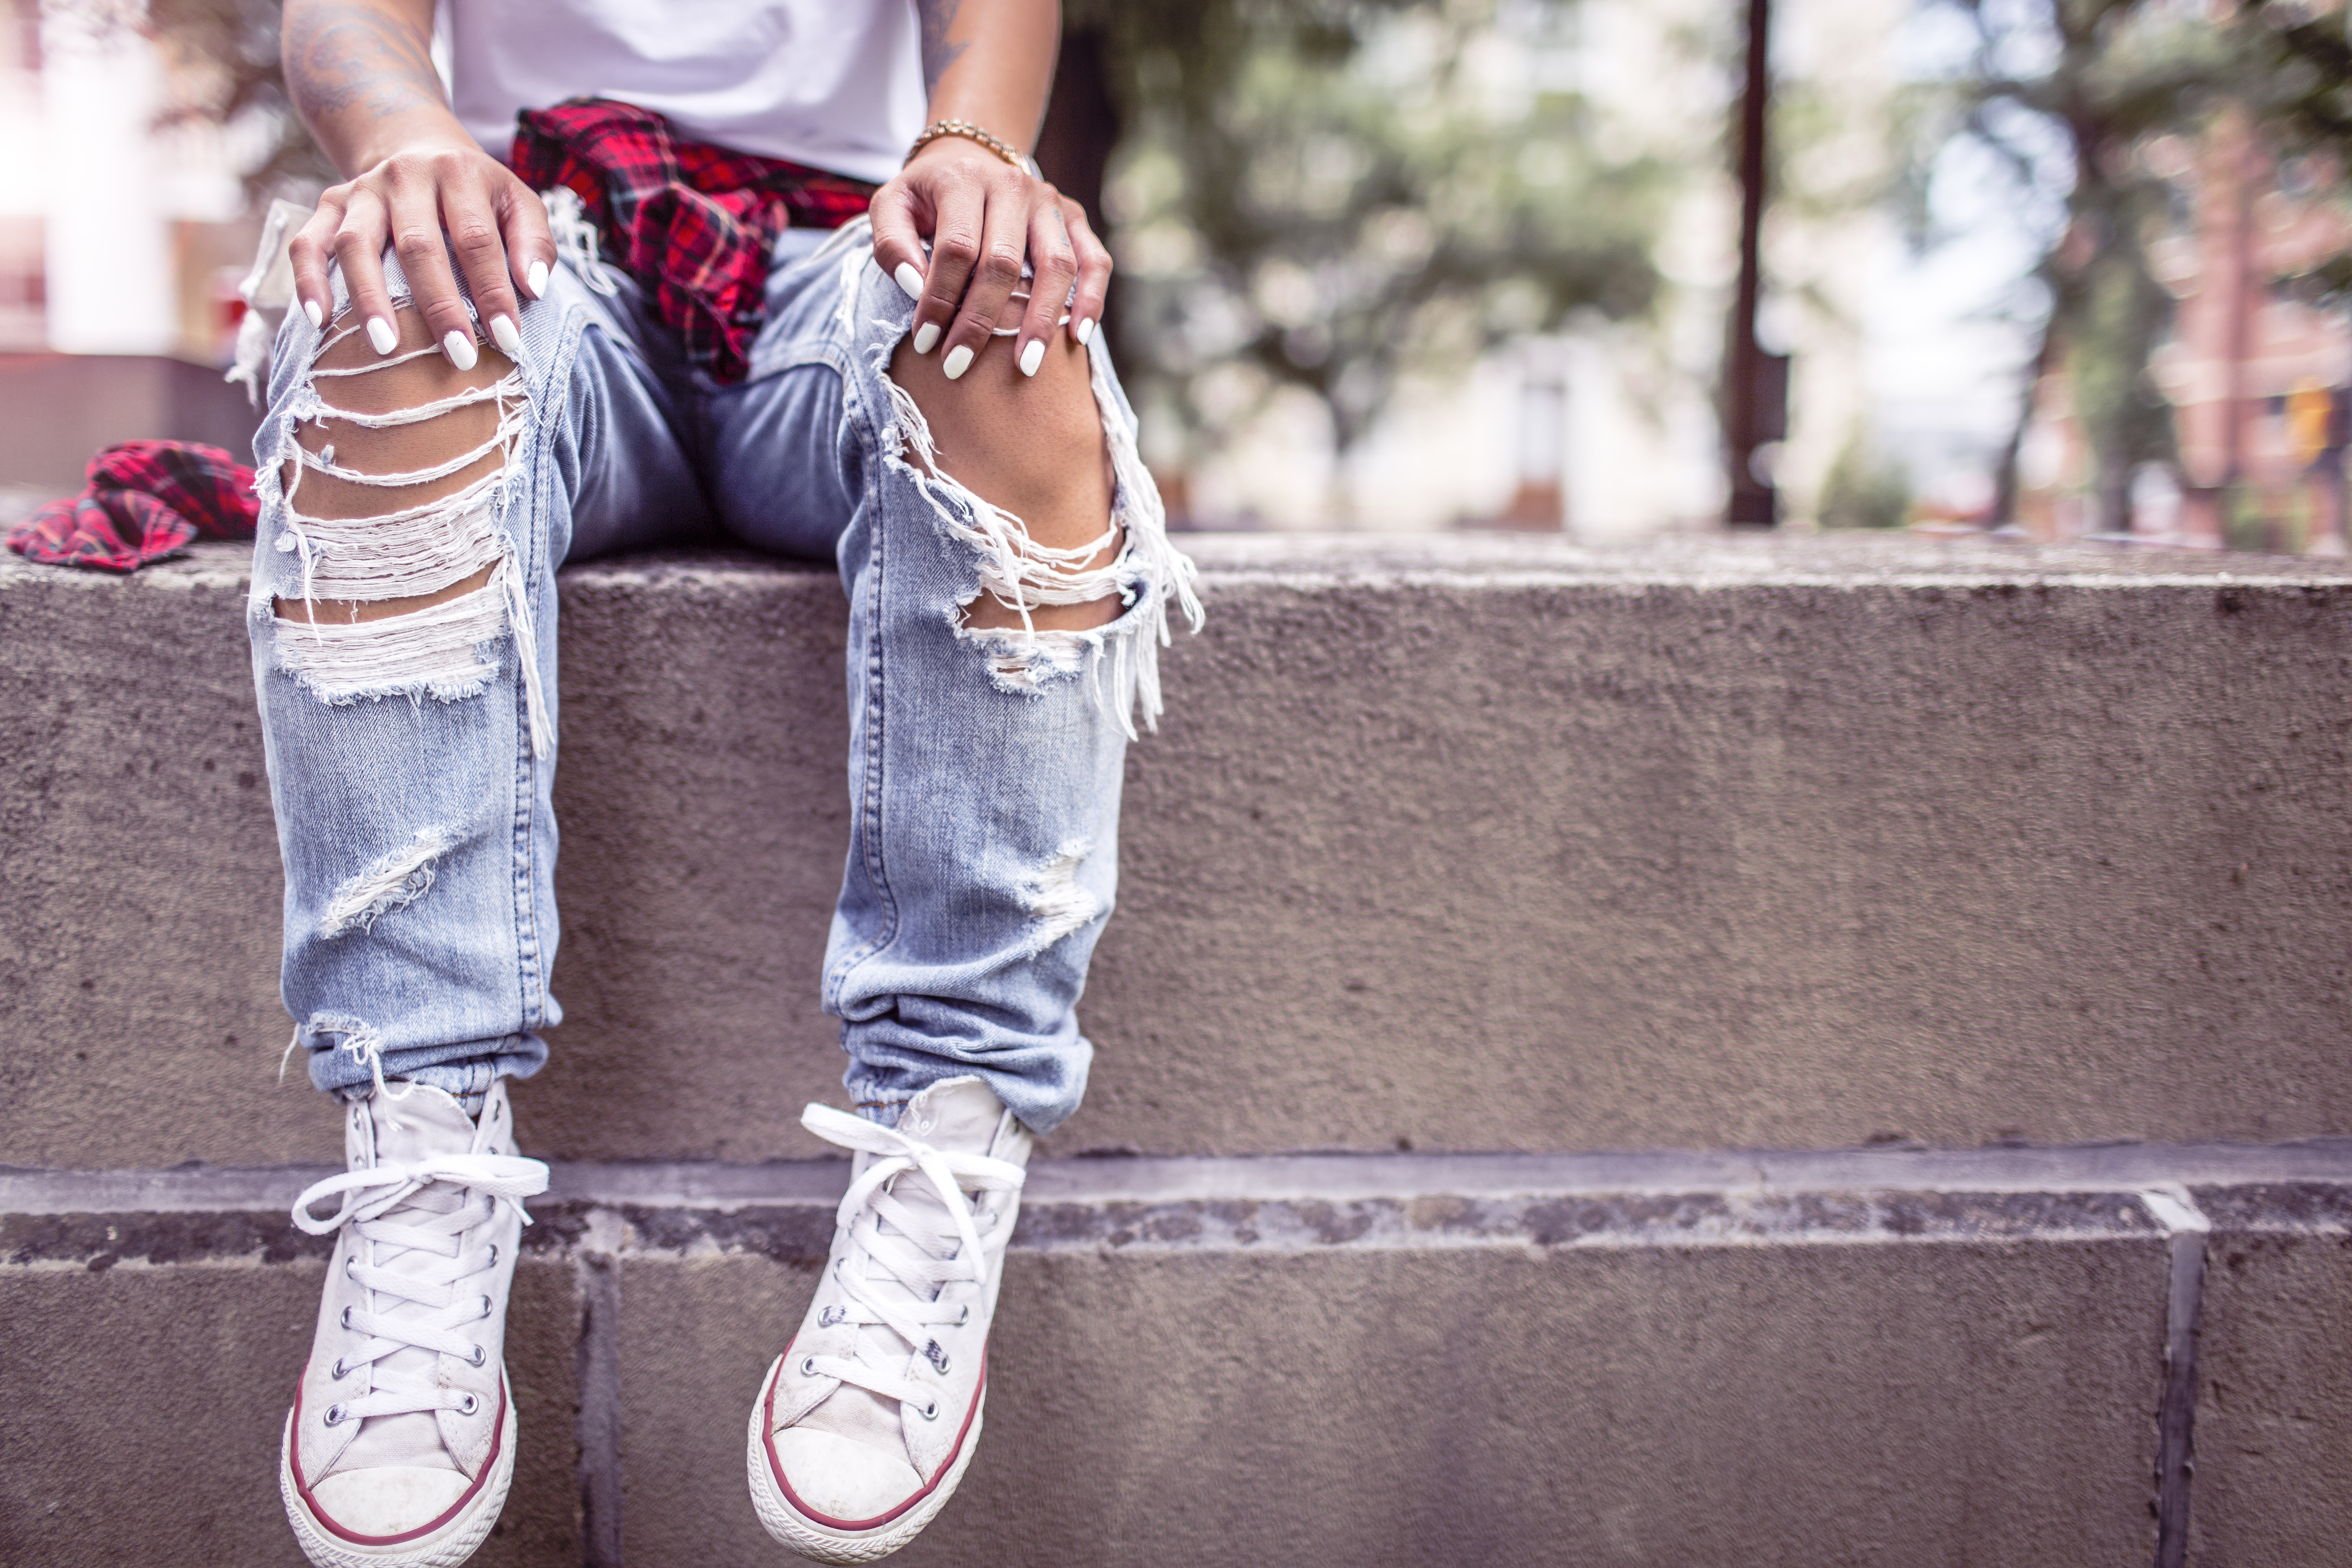 girl_style_shoes_jeans_107825_5638x3759